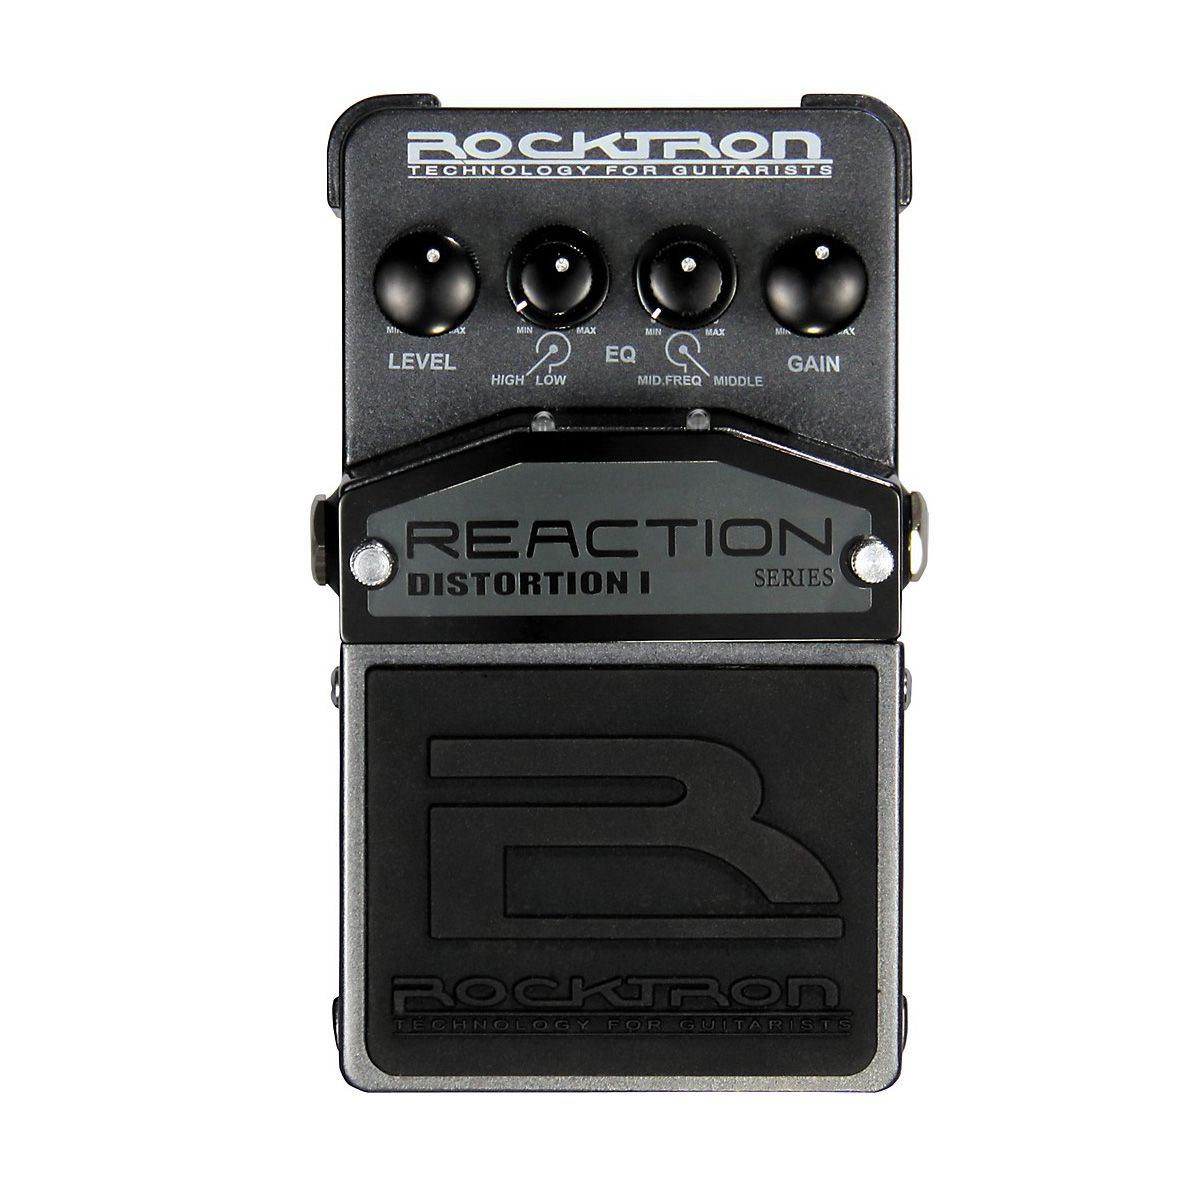 Pedal de Efeito Rocktron Reaction Distortion